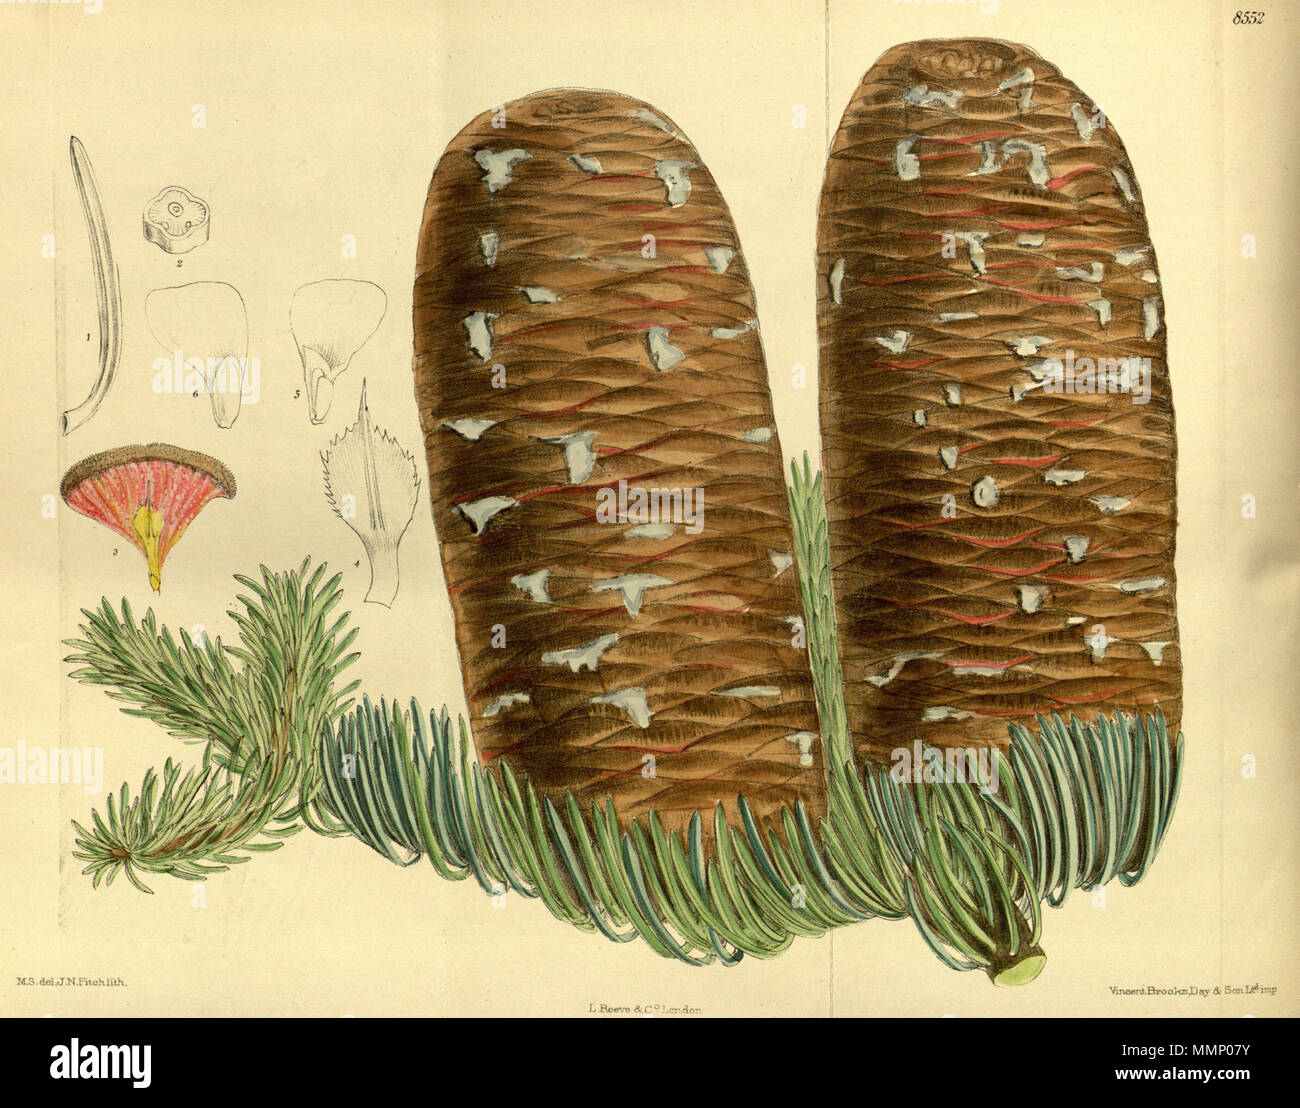 . Abies magnifica, Pinaceae  . 1914. M.S. del., J.N.Fitch lith. 24 Abies magnifica 140-8552 - Stock Image